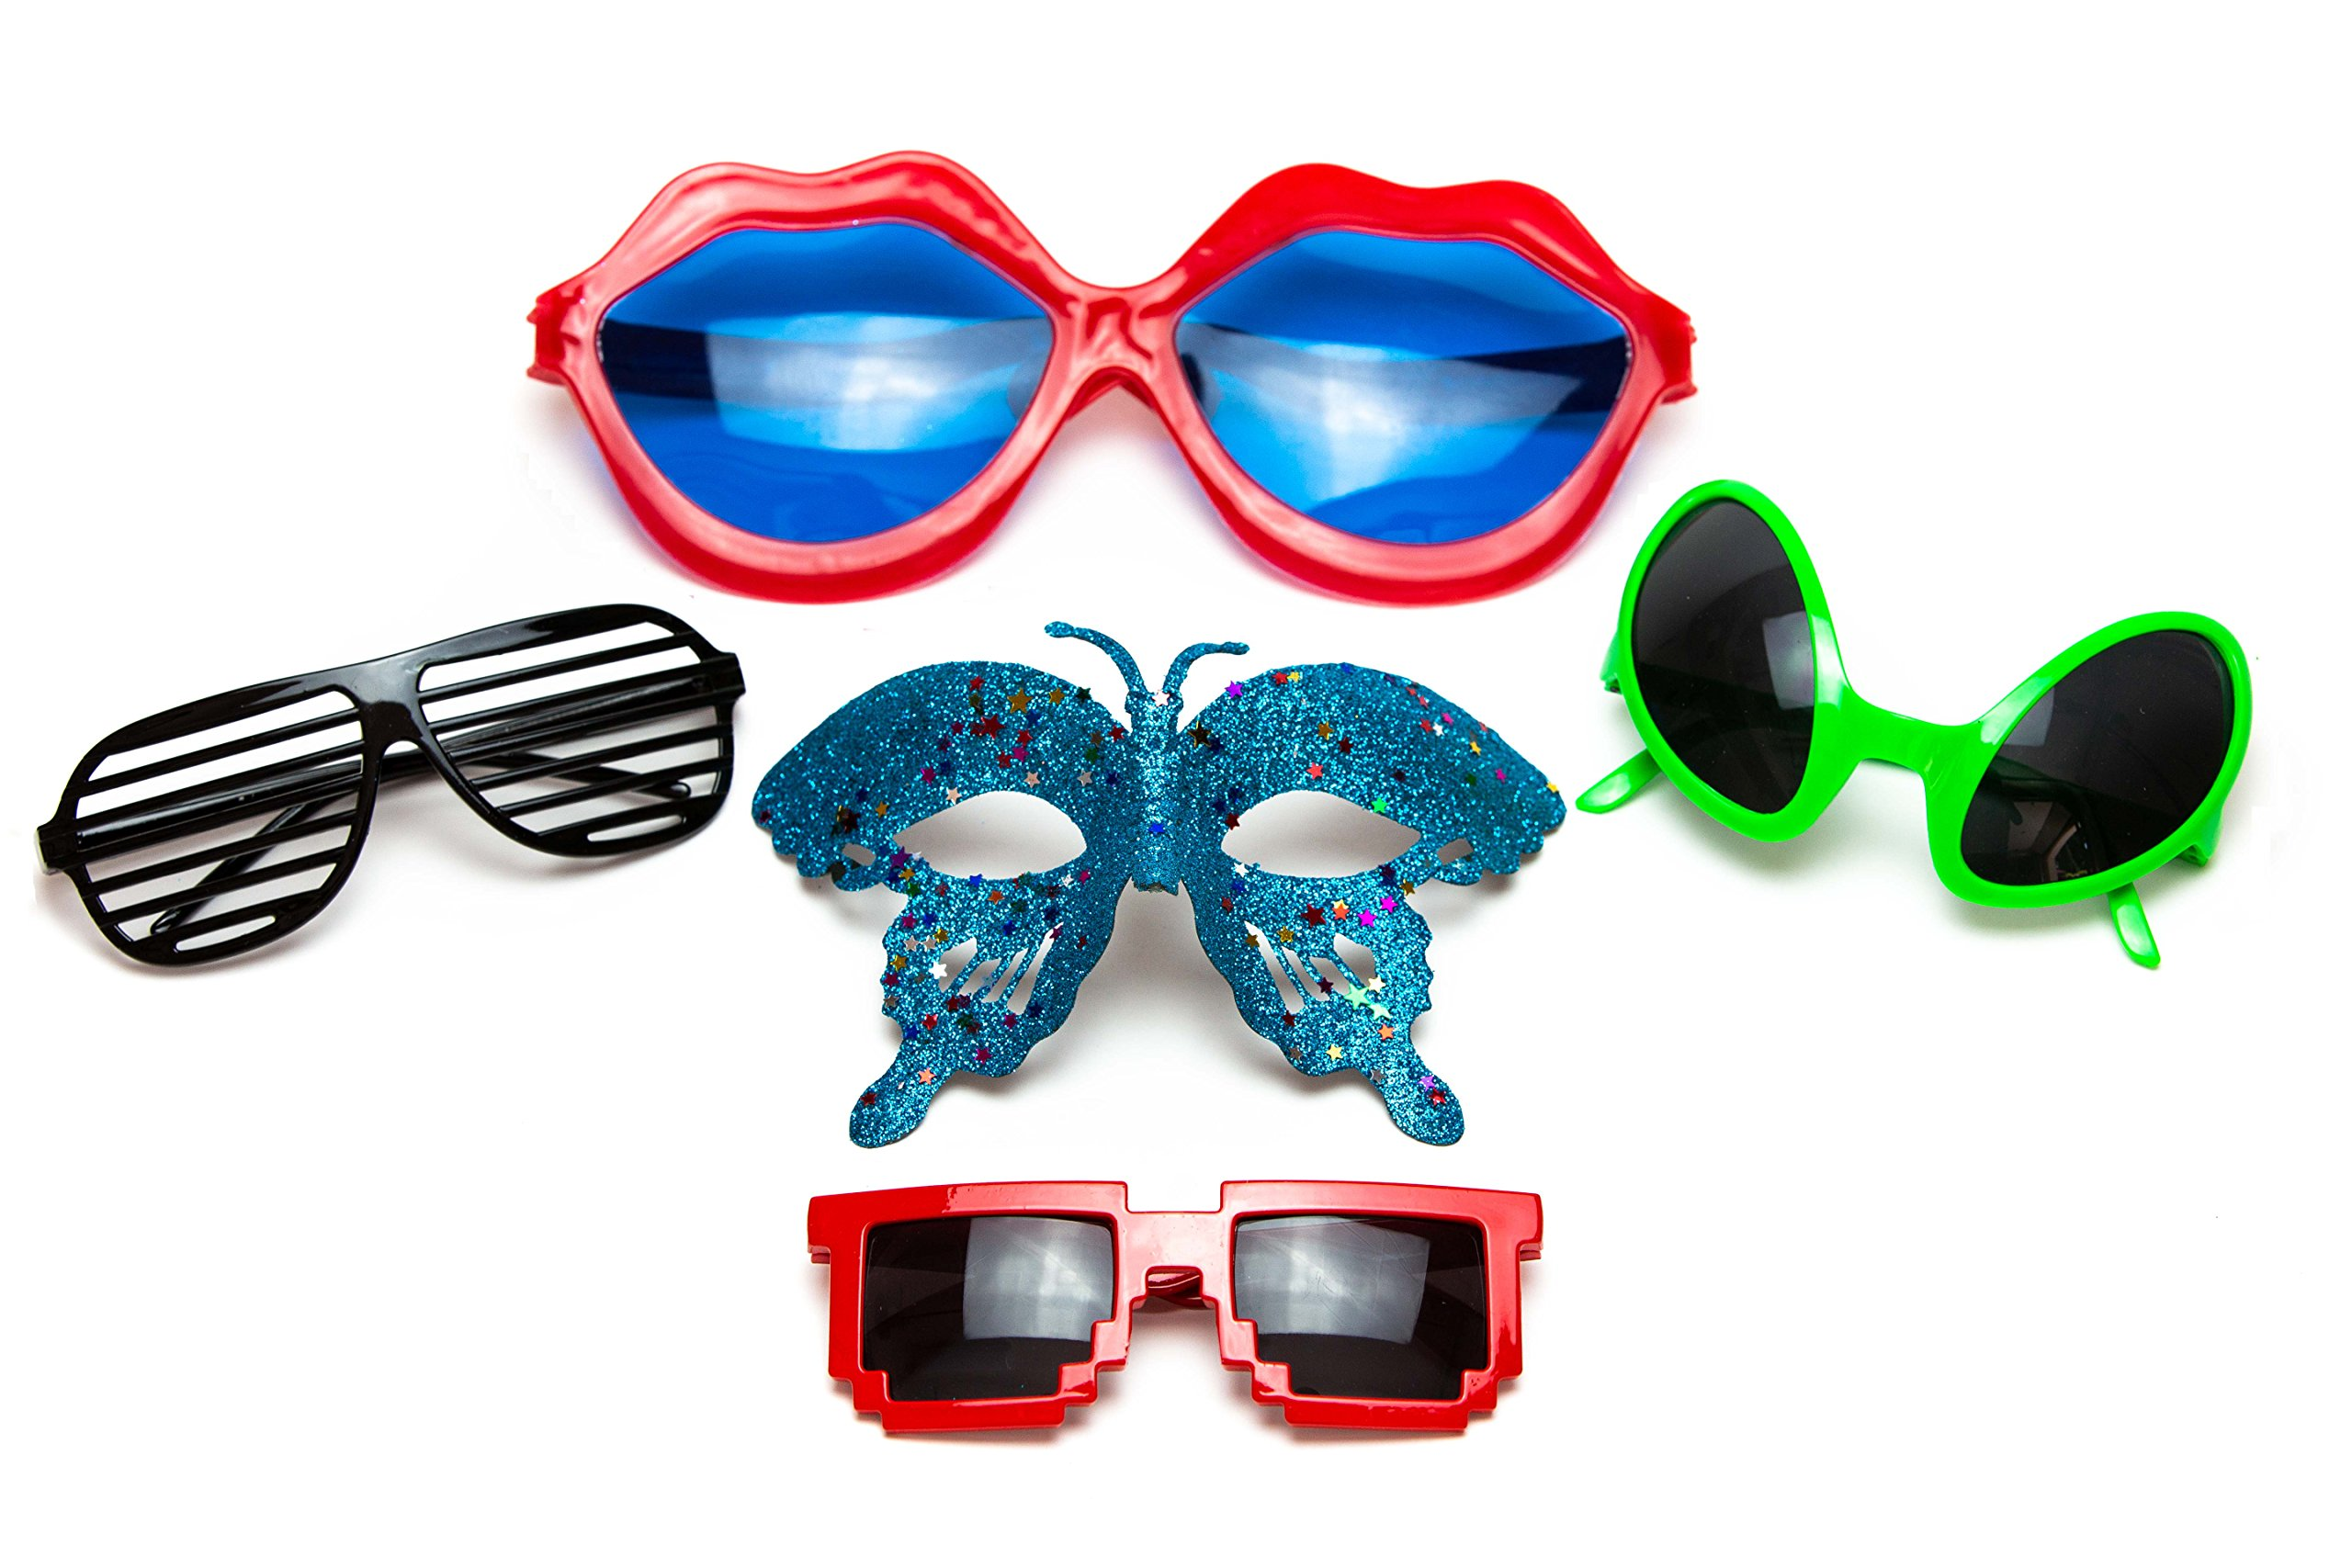 Funny Sunglasses for Party or Photo Booth - Pack of 5 Cool Unique Accessories for Kids, Men and Women - Includes Lip, Shutter Shades, 8-Bit, Alien Sunglasses and Masquerade Mask